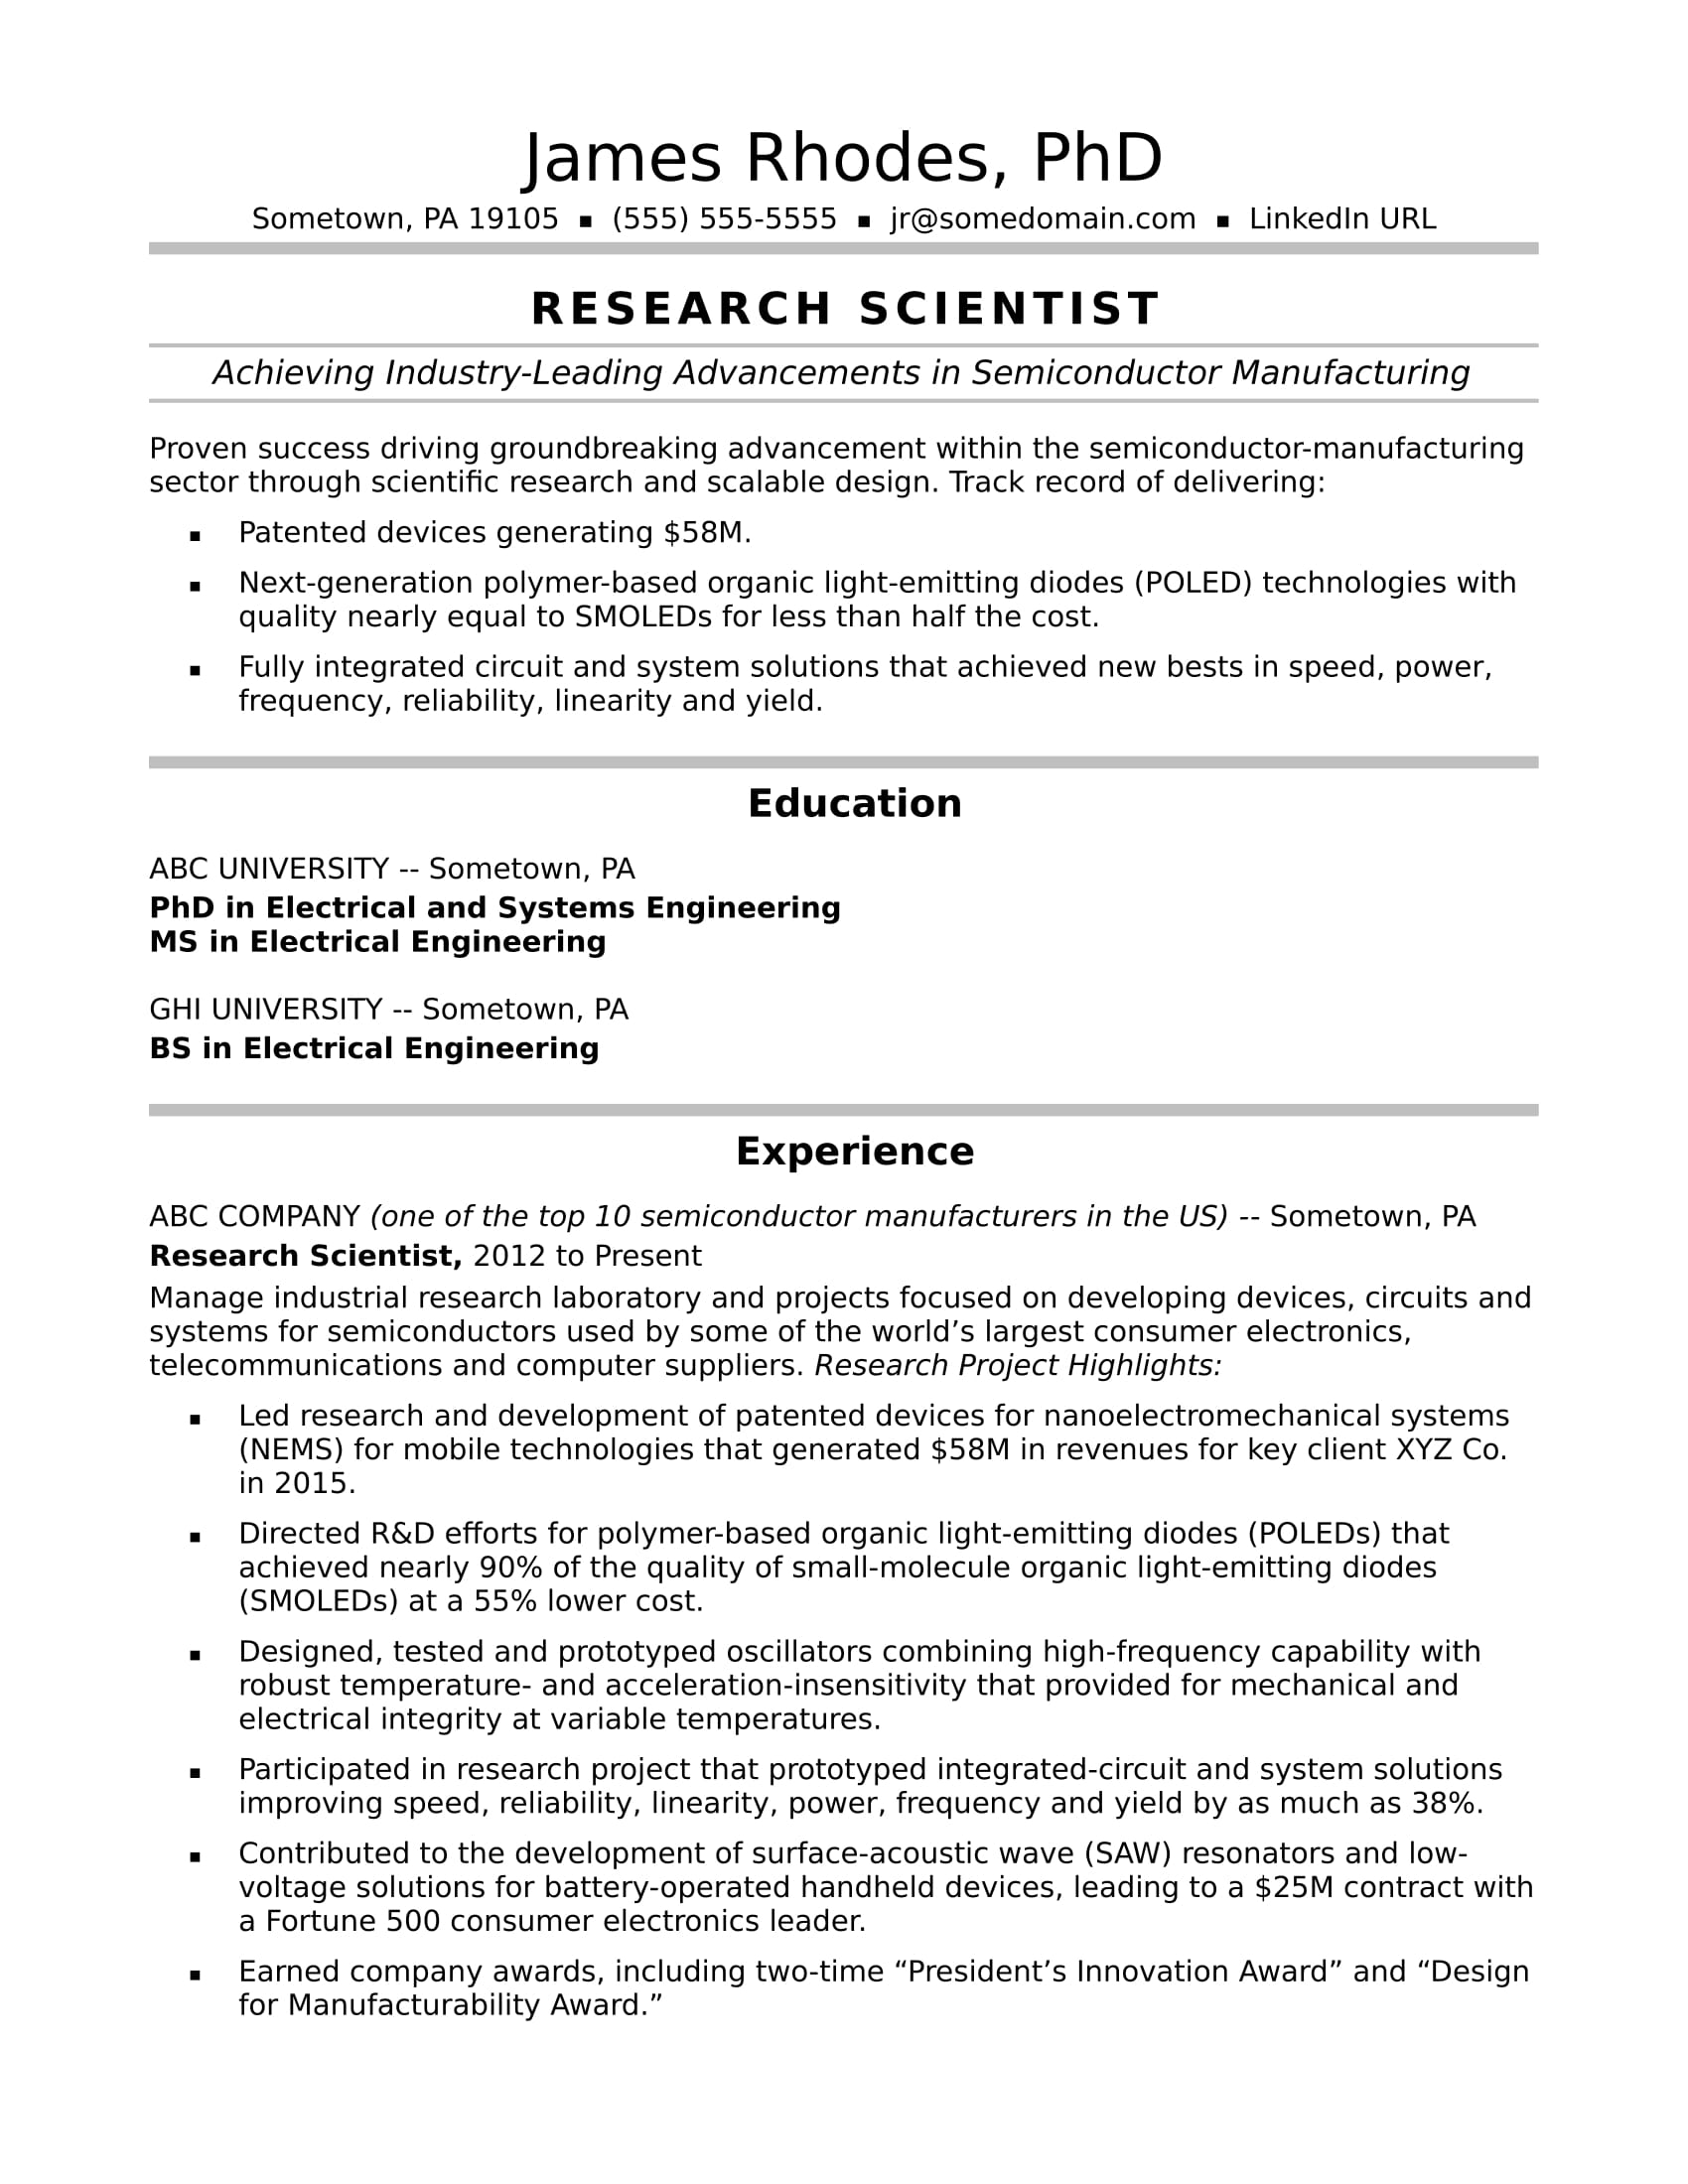 Sample Resume For A Research Scientist  Writing Resume